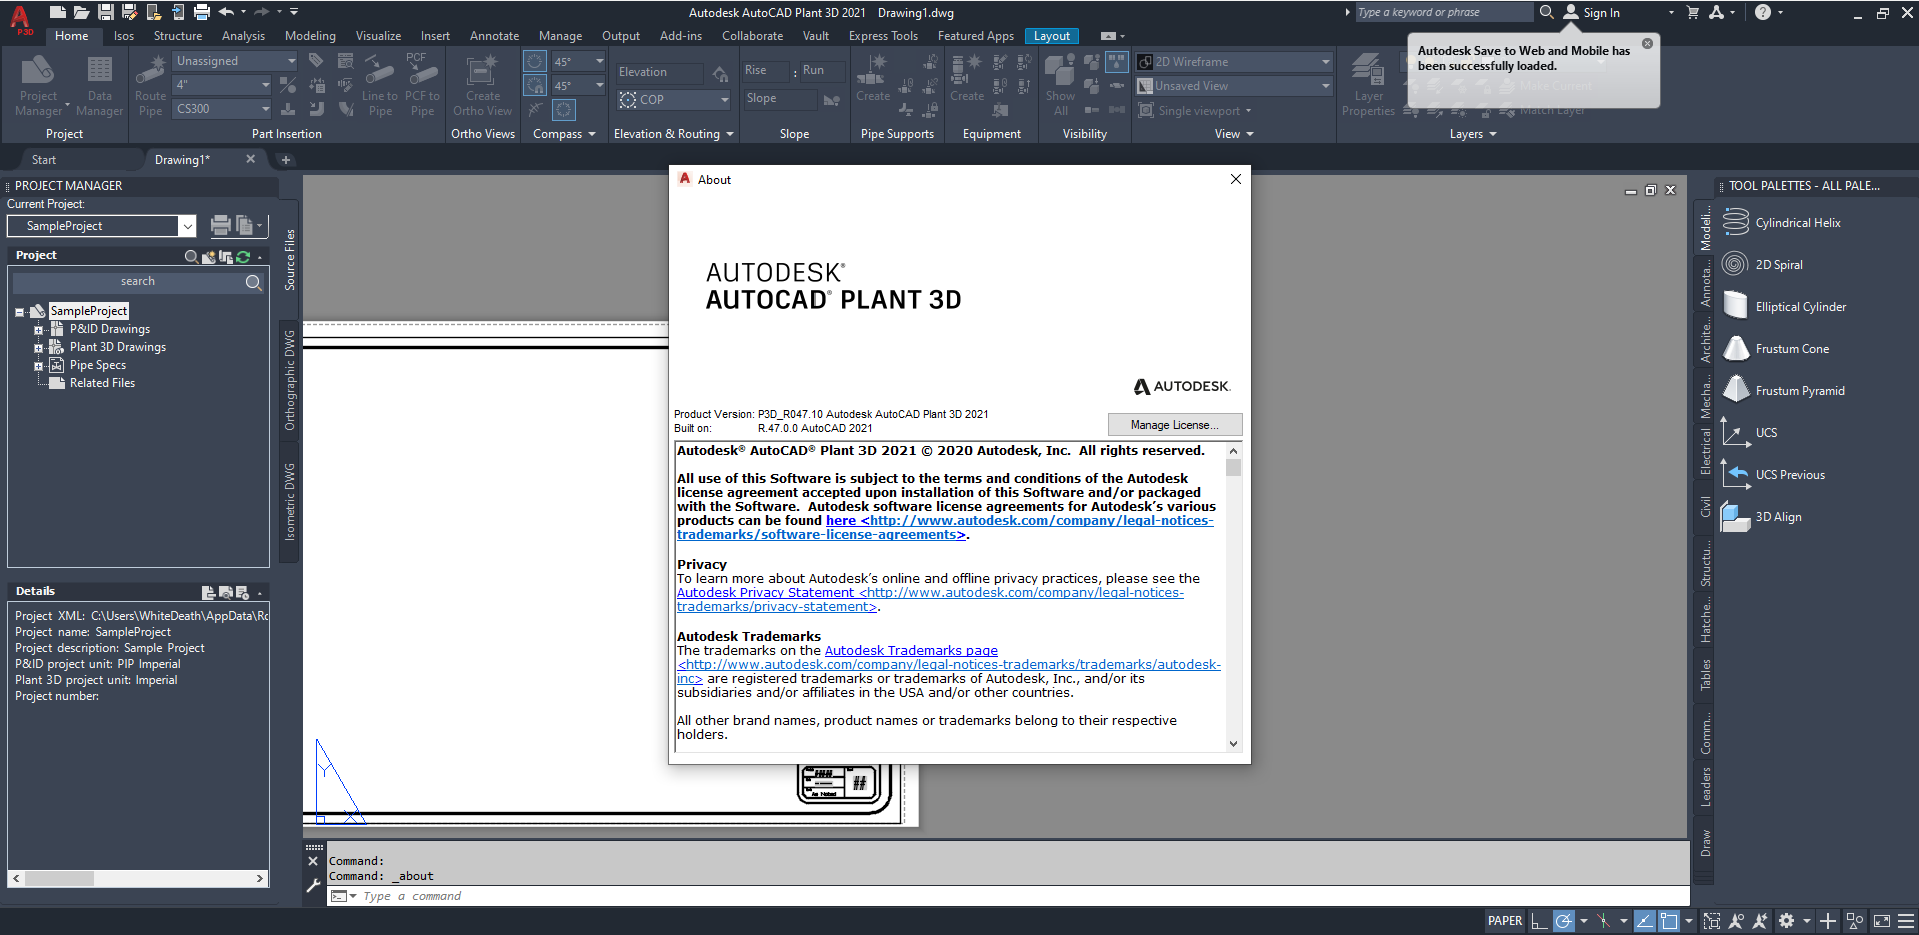 Working with Autodesk AutoCAD Plant 3D 2021 full license